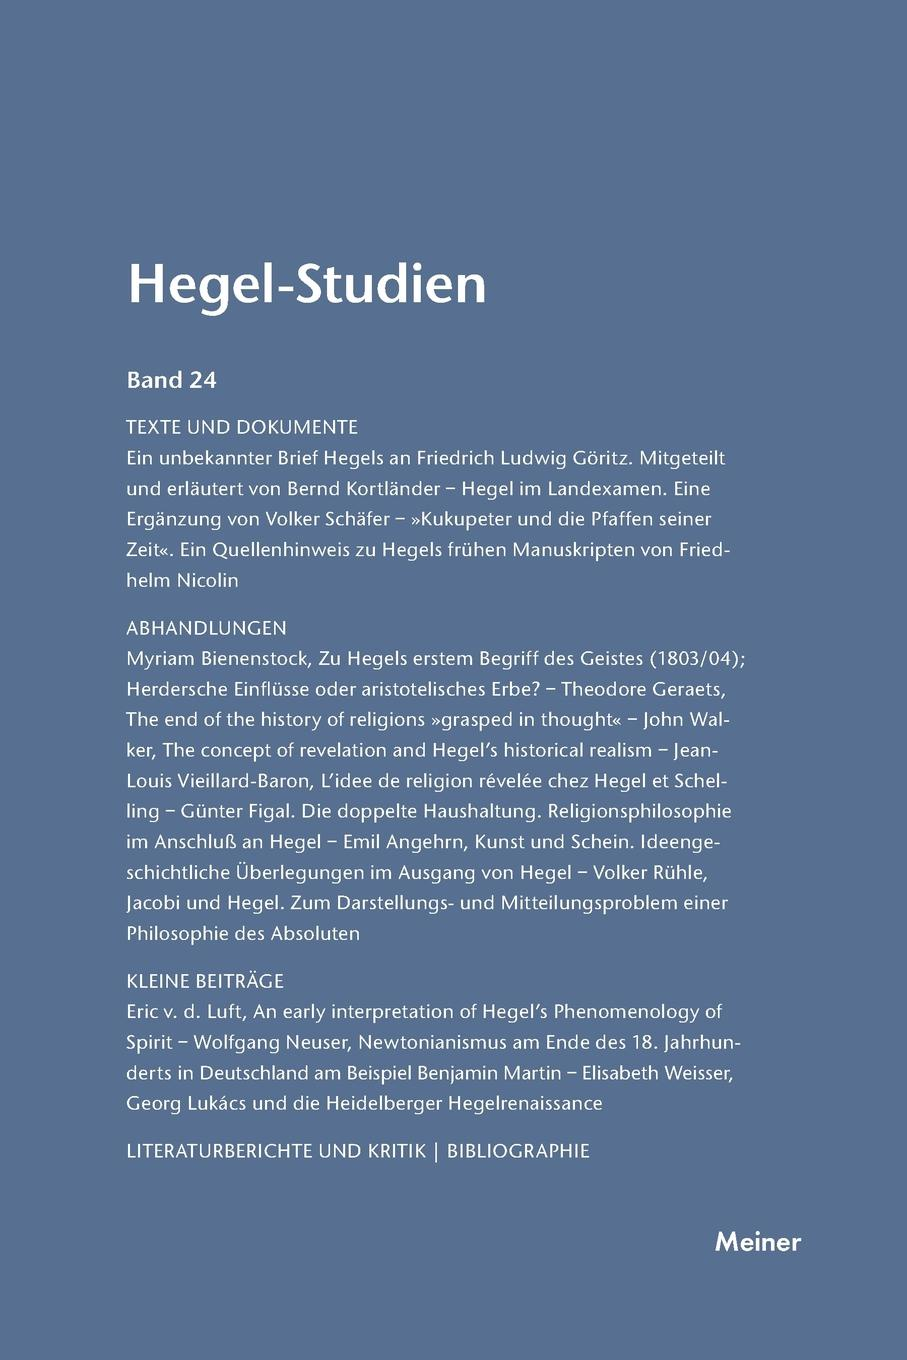 Hegel-Studien / Hegel-Studien hegel the end of history and the future